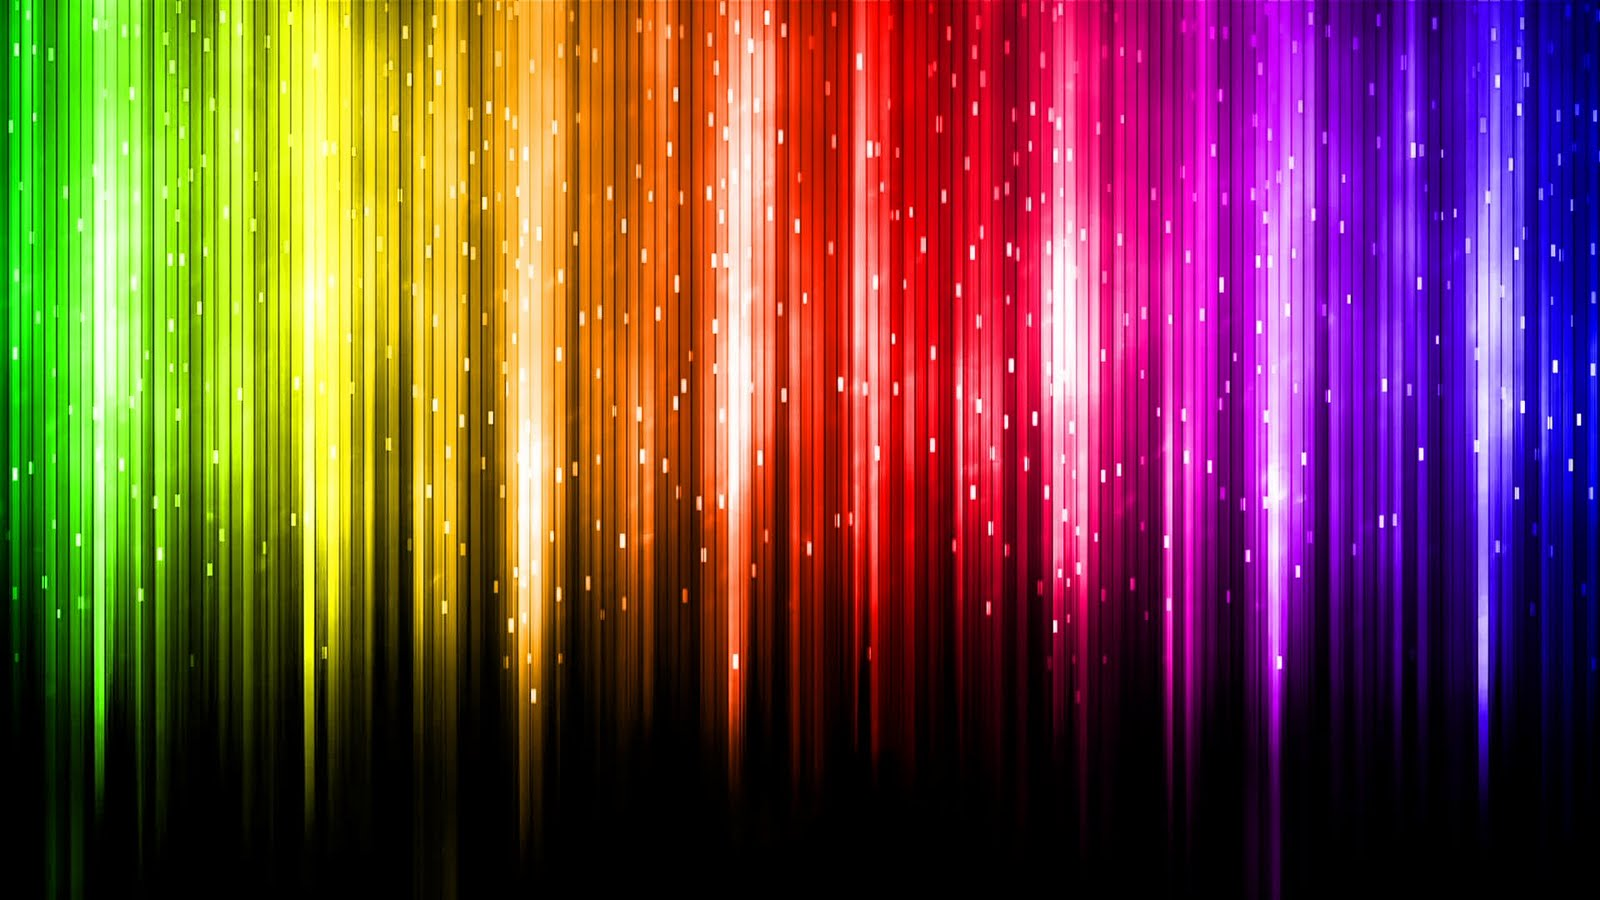 out gay today so this edition of Image of Sunday is rainbow pride 1600x900